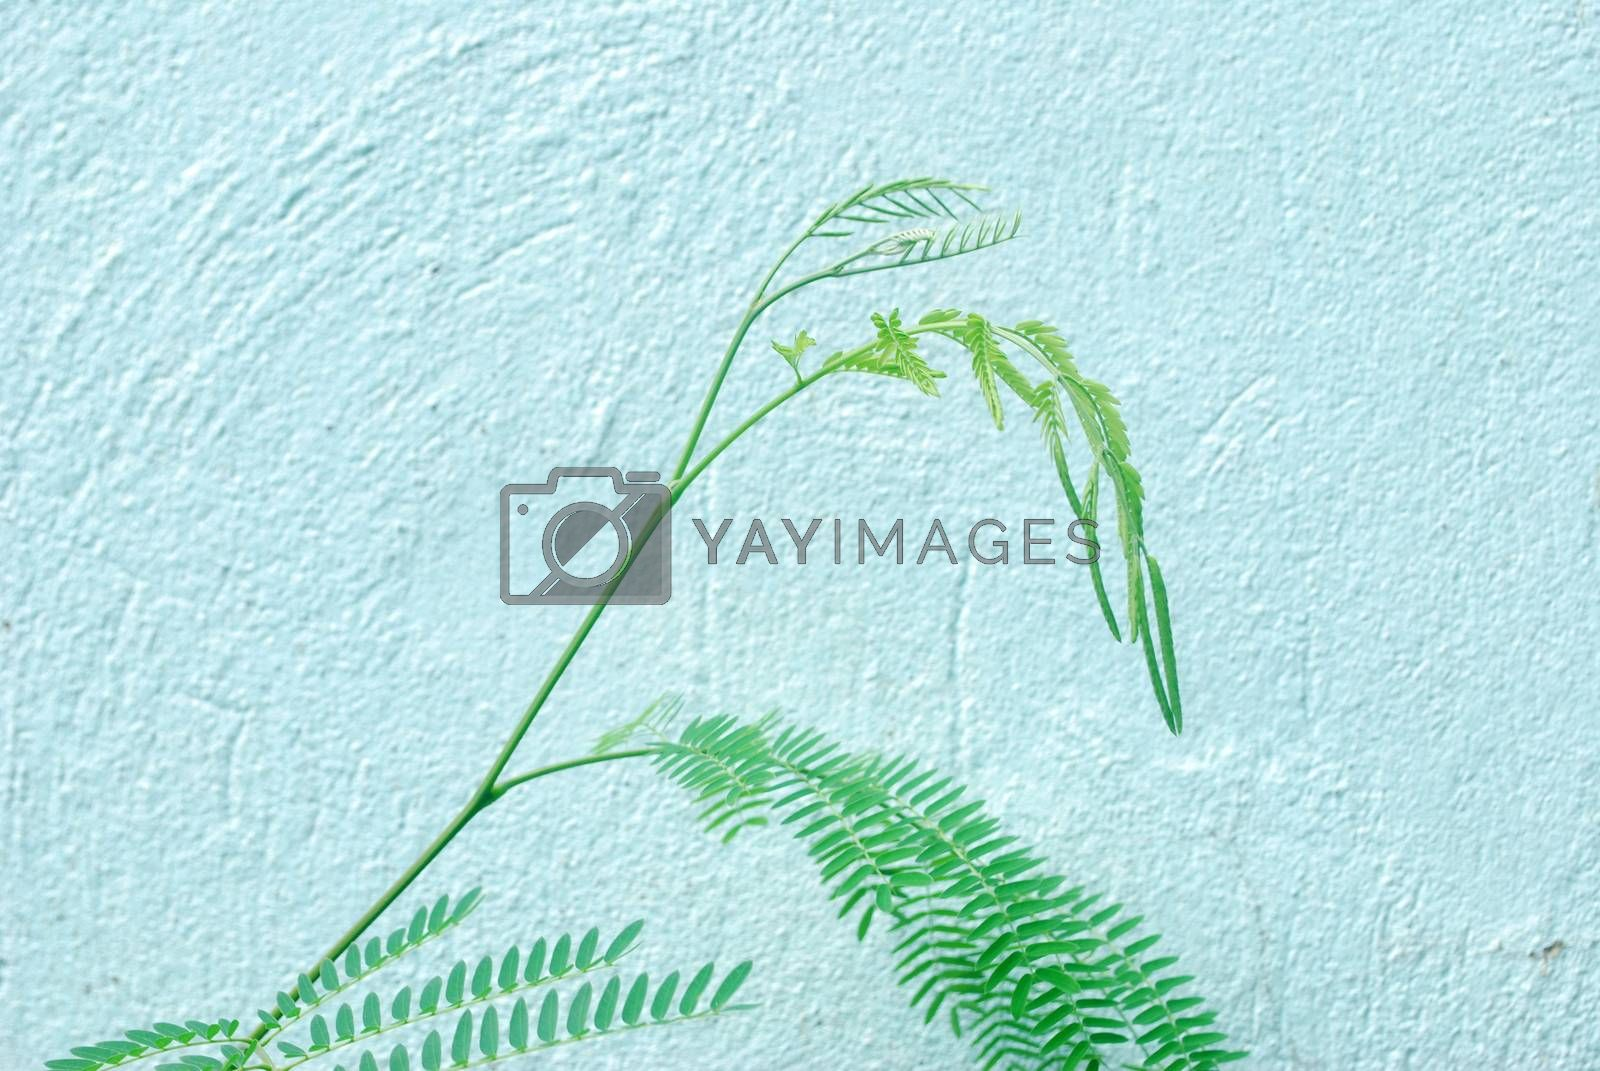 Leucaena is a plant extracted as a food for vegetables.